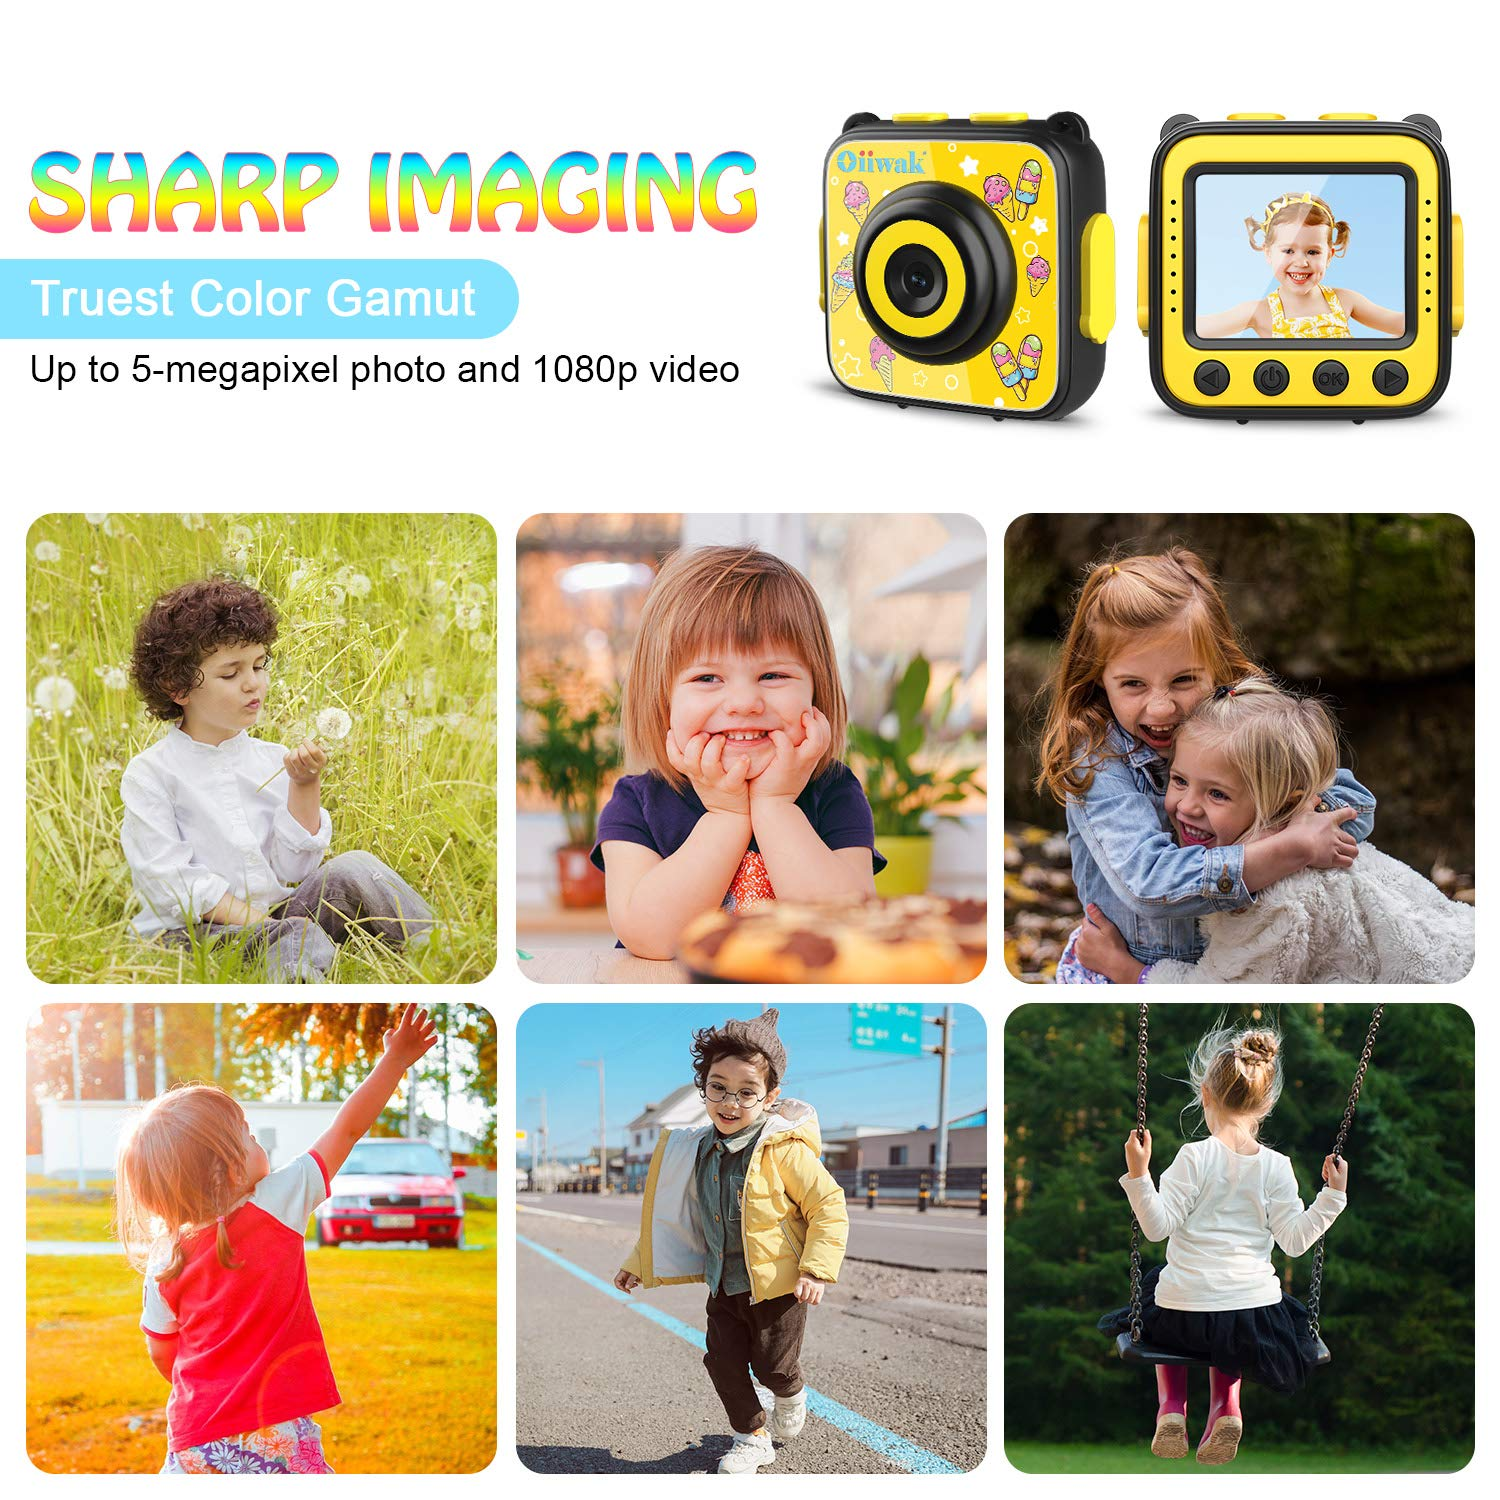 Kids Camera, Oiiwak Kids Video Camera Waterproof Toys for 3-10 Year Old Girls, 5.0 MP HD Digital Mini Camcorder for Children with 32GB Memory Card by Oiiwak (Image #3)